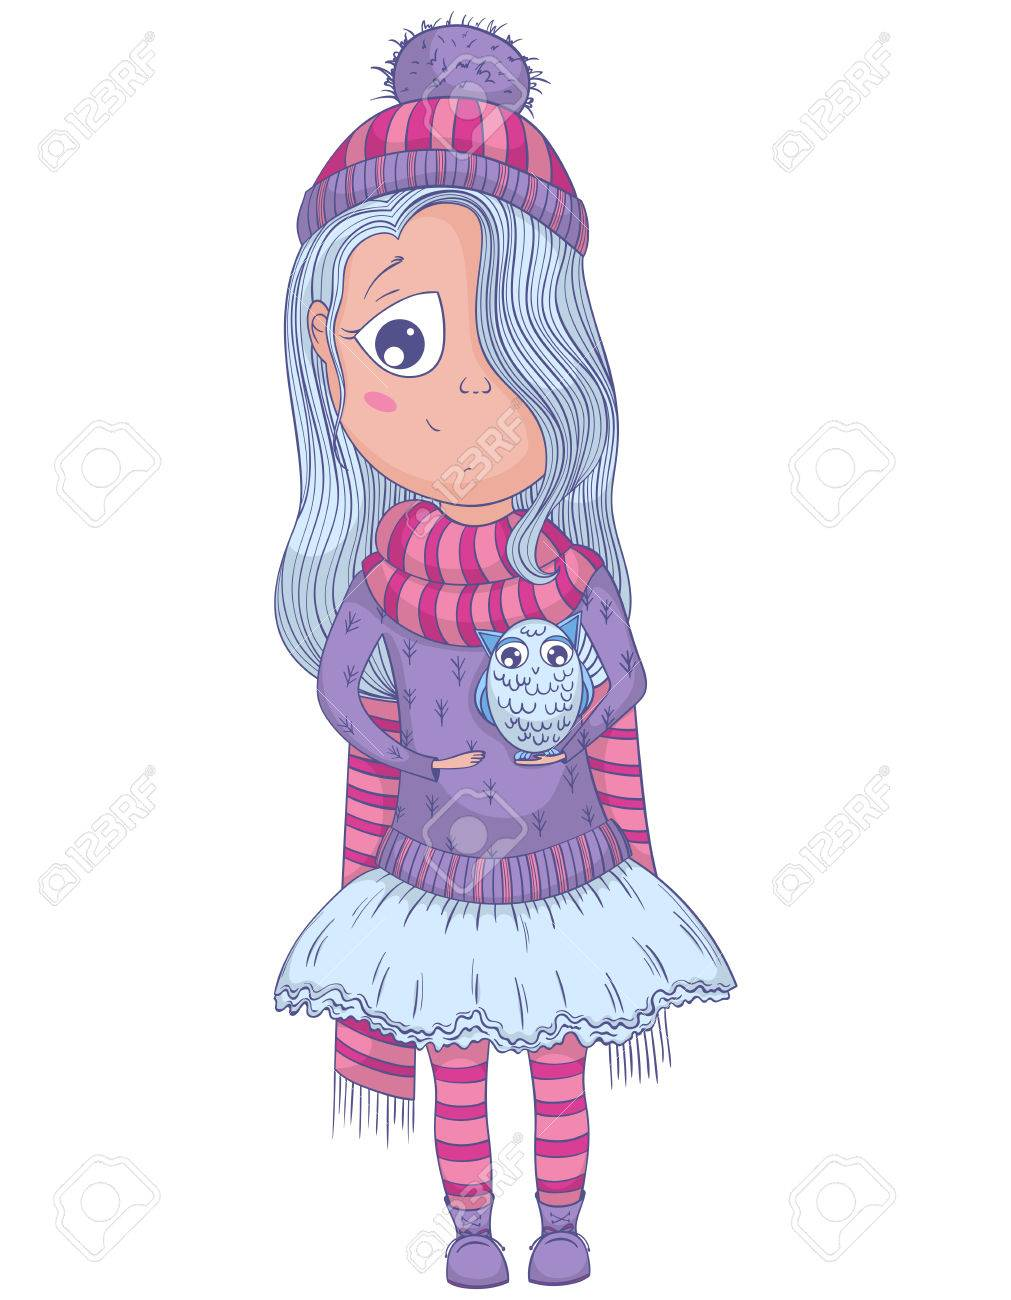 Cute anime girl in tutu and winter clothes with owl cartoon character illustration stock